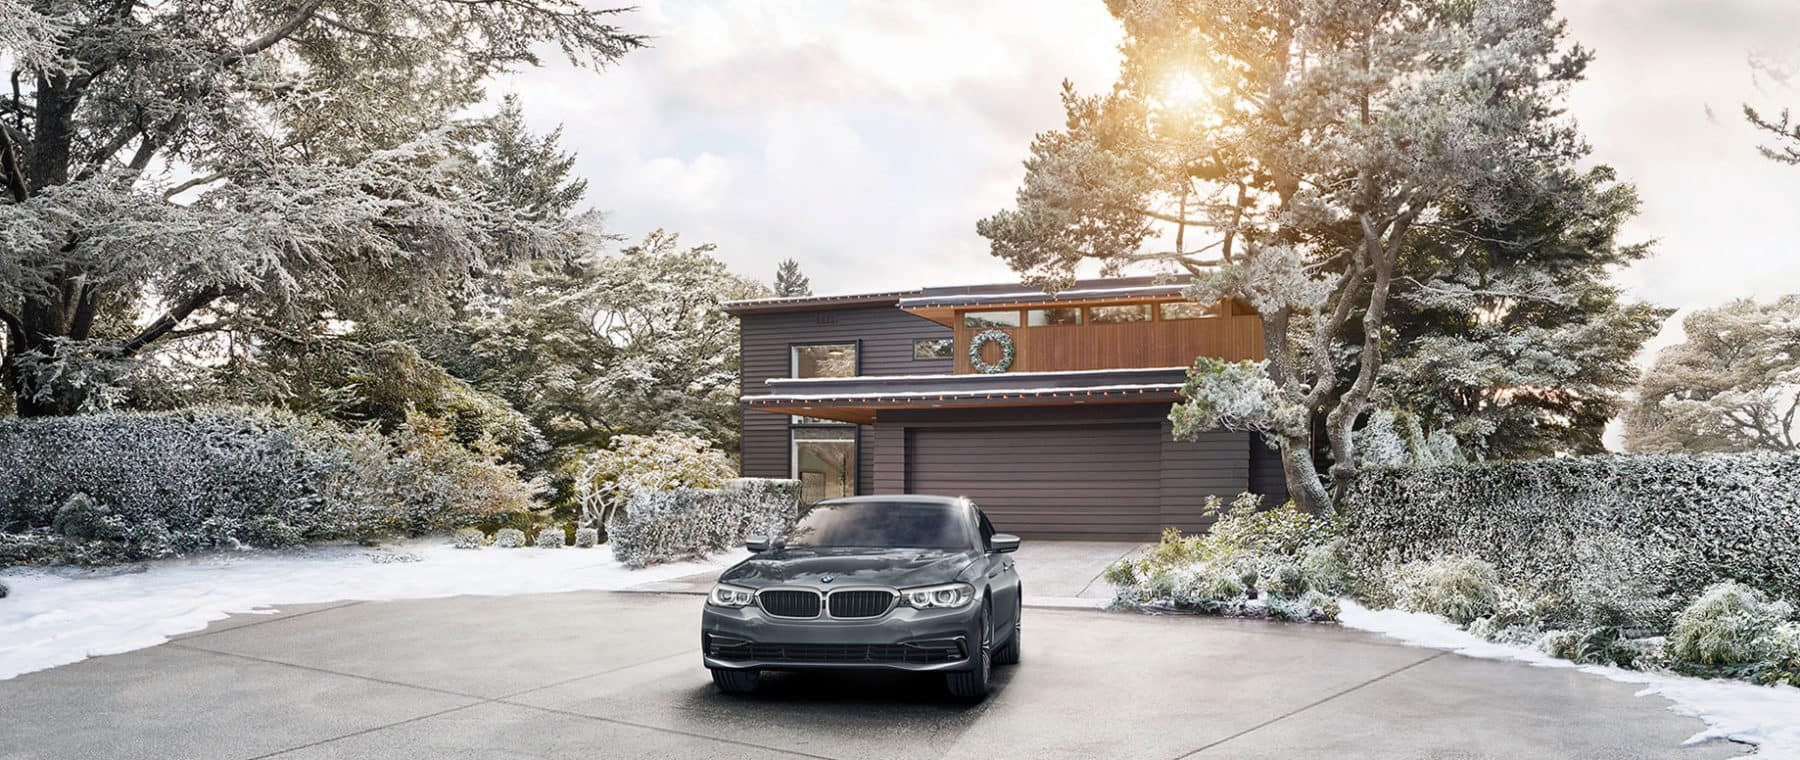 BMW Of Springfield >> Bmw Of Springfield New Pre Owned Bmw Dealer In